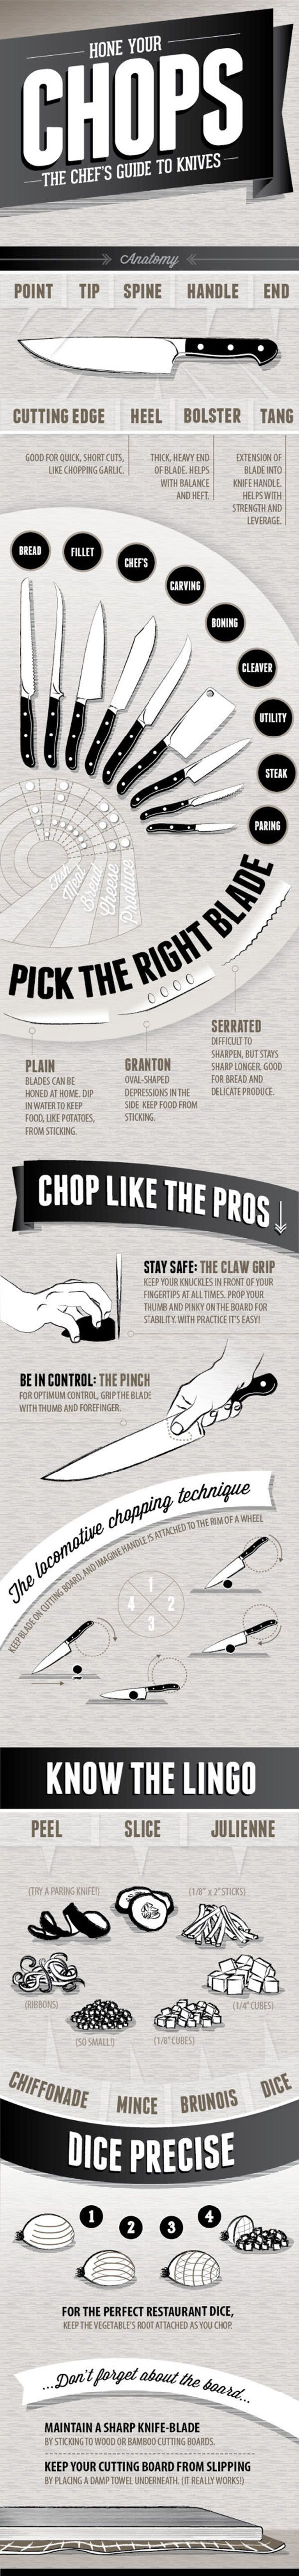 55 best Cooking Tips images on Pinterest | Kitchens, Cooking food ...